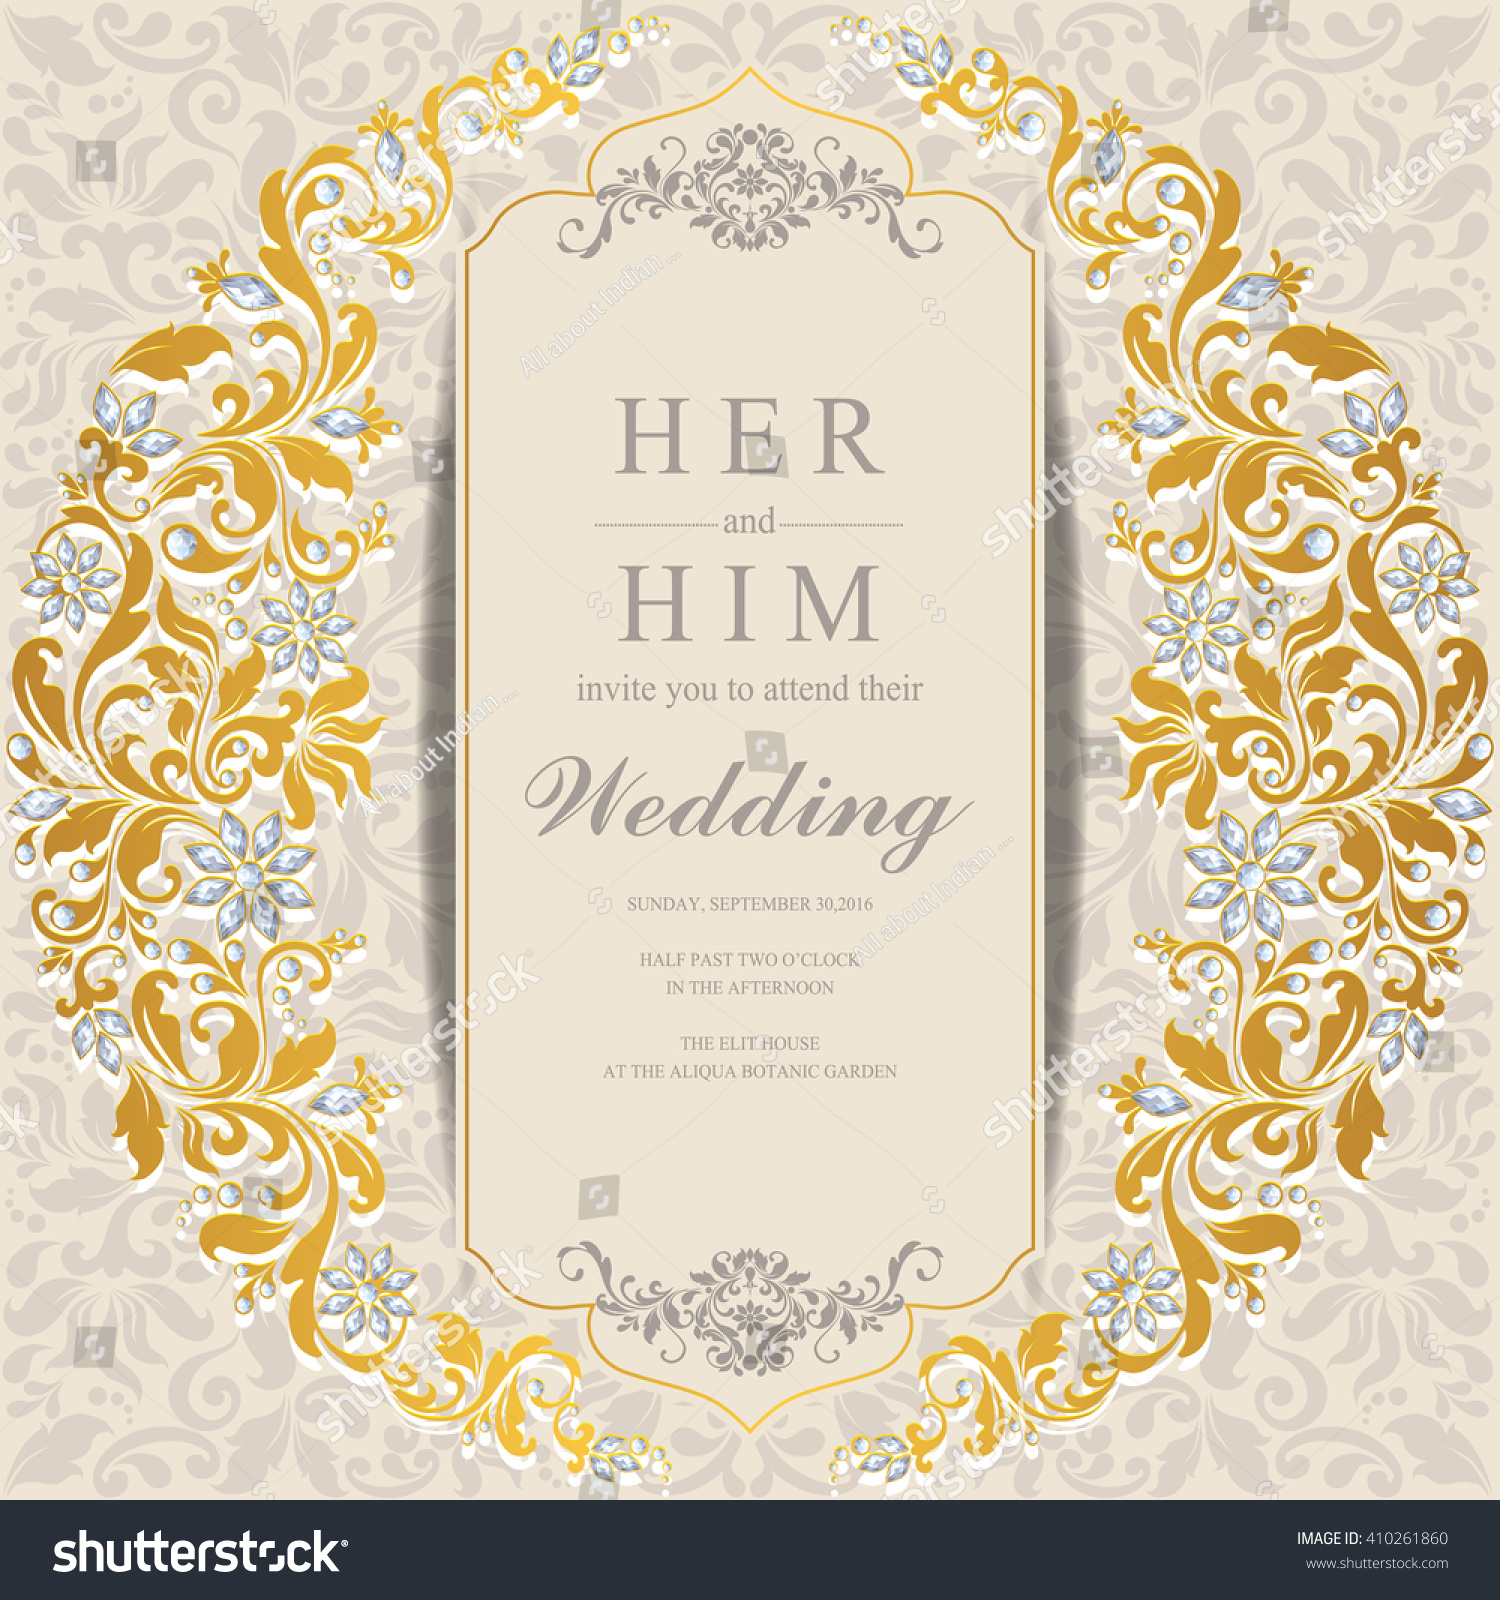 Wedding Invitation Card Abstract Background Islam Stock Photo (Photo ...